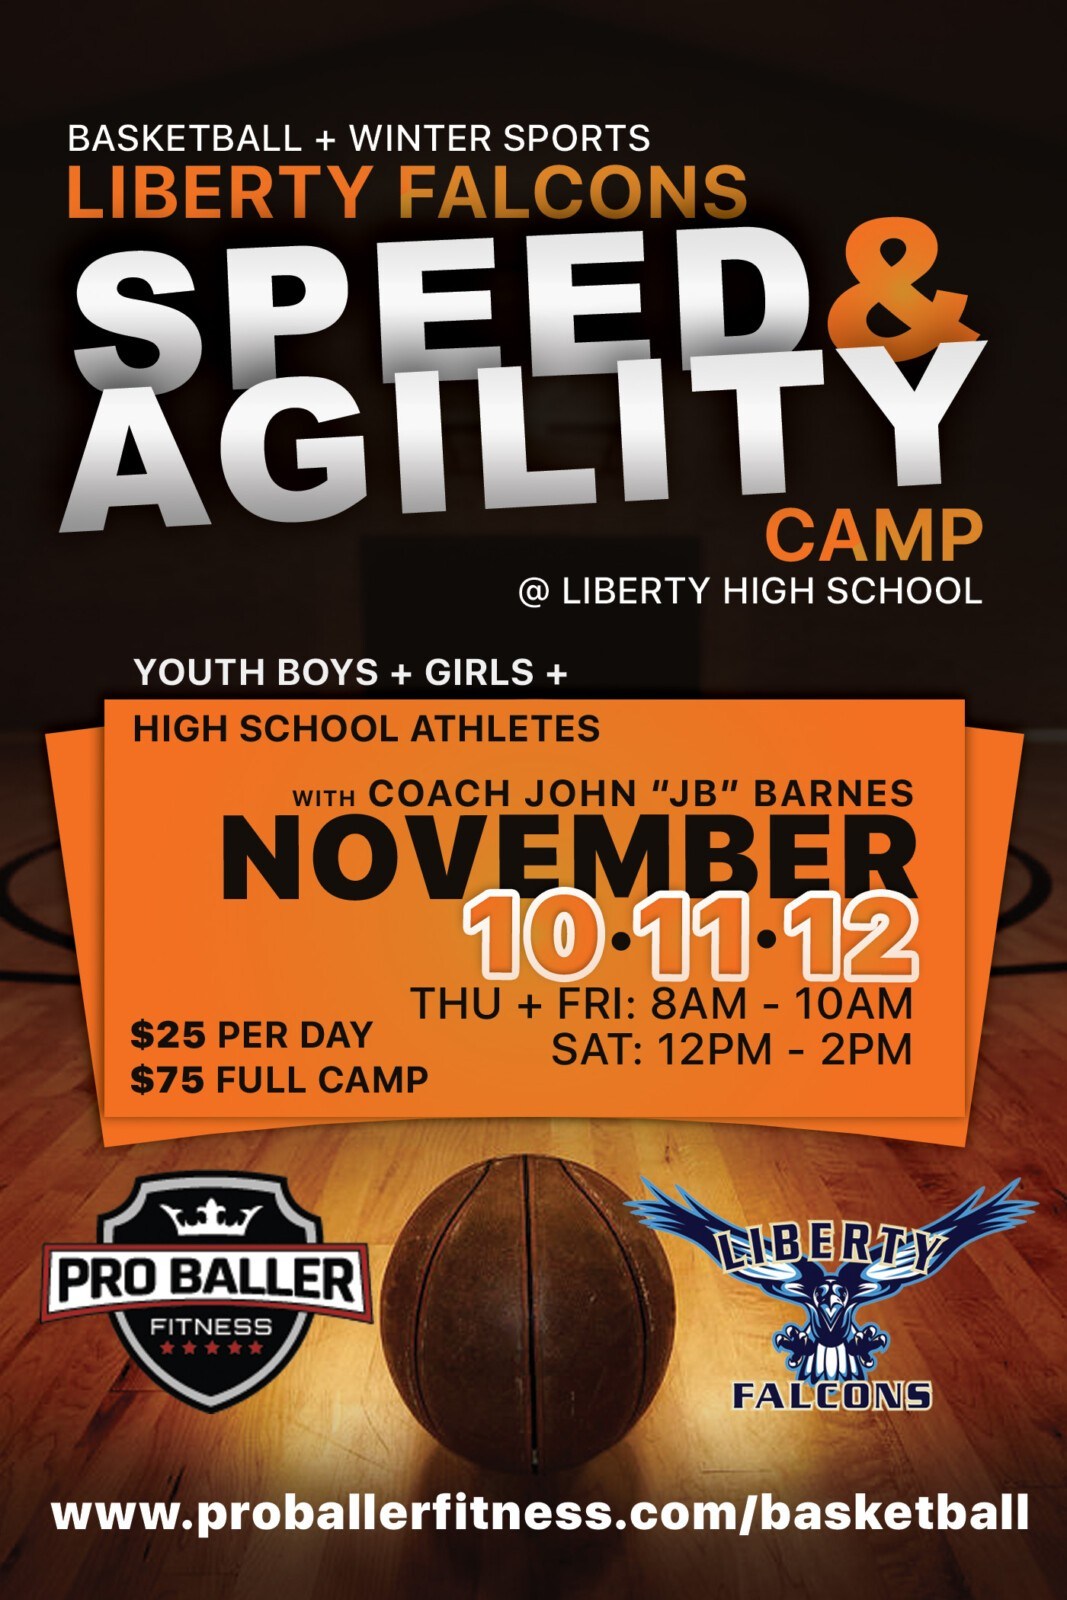 Liberty Falcons Speed + Agility Camp